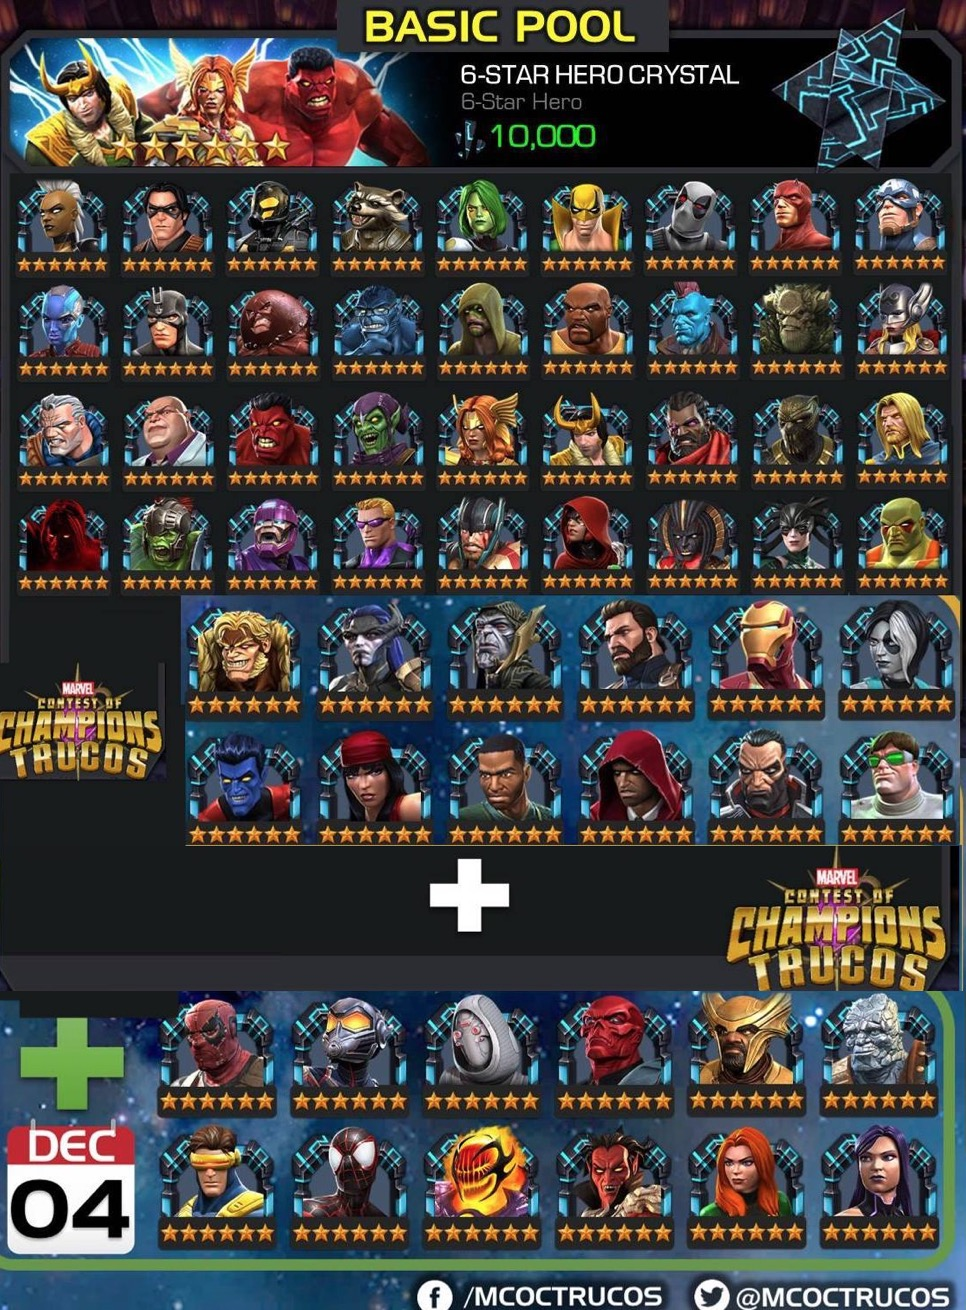 Available and Upcoming Champions in 6-Star Basic Pool